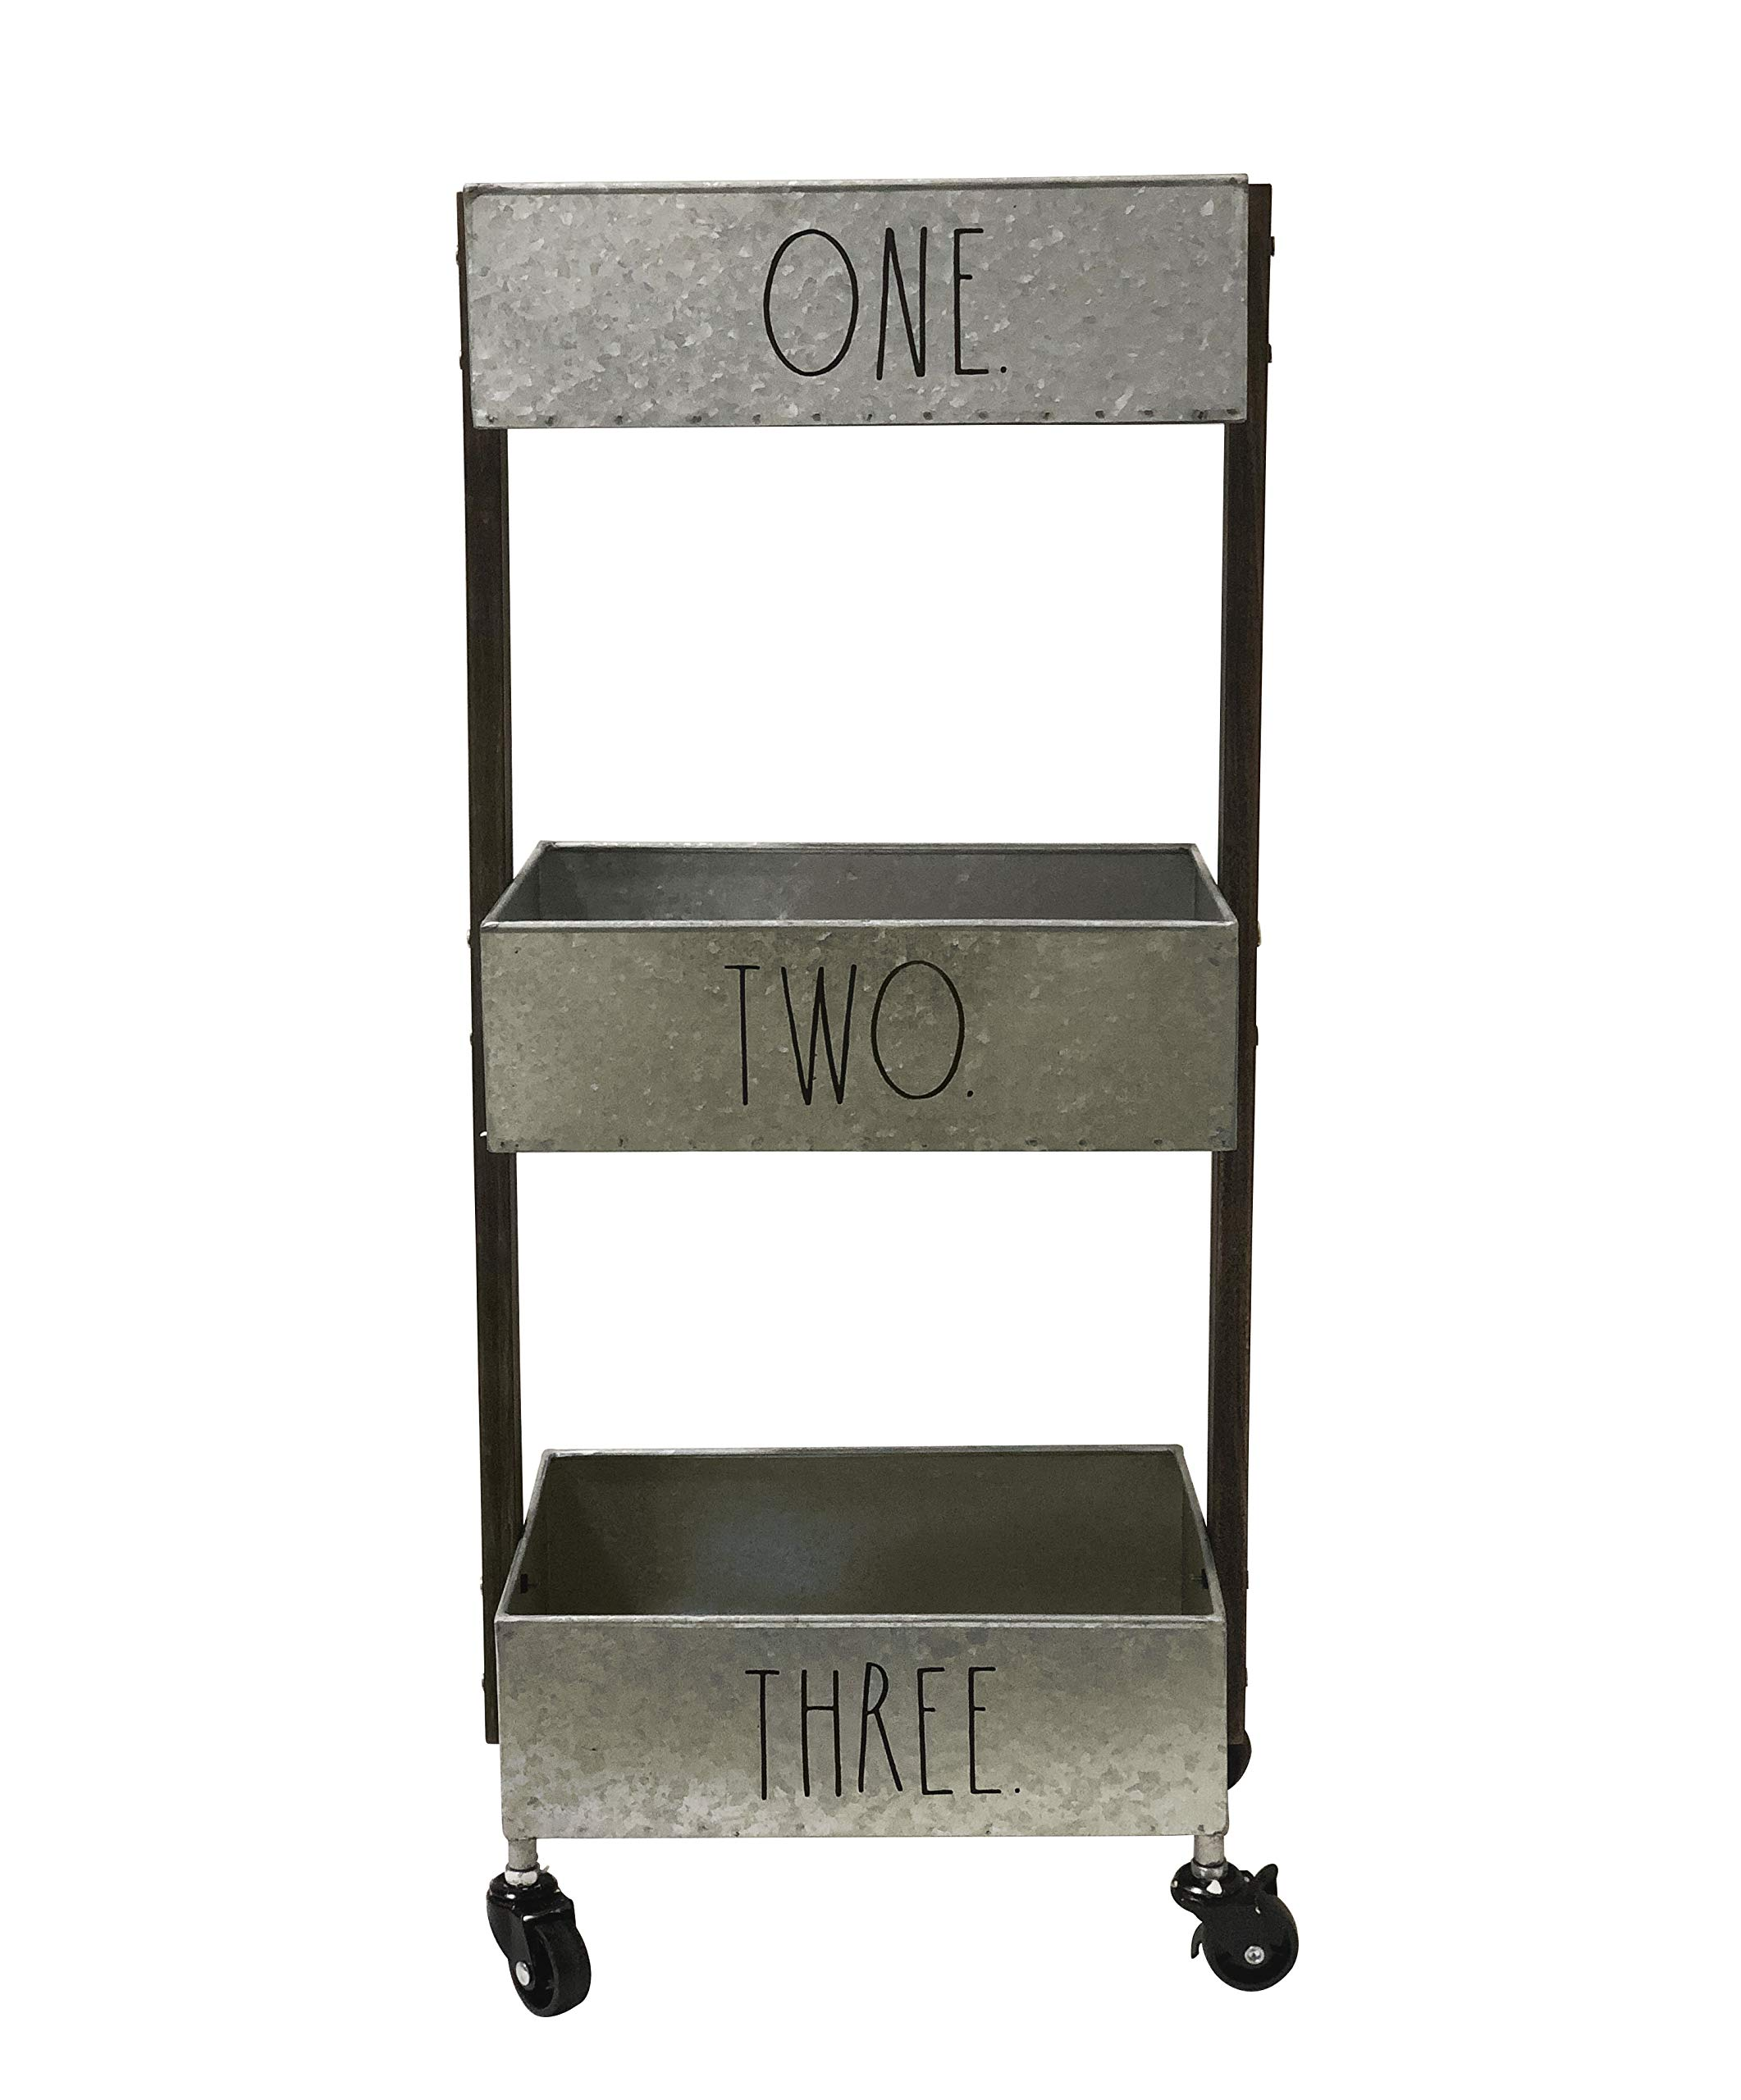 Rae Dunn 3 Tier Wheeled Organizer - Galvanized Steel Caddy with Wood Handle Accents - Chic and Stylish Portable Metal Storage Bin for Office, Home or Kitchen